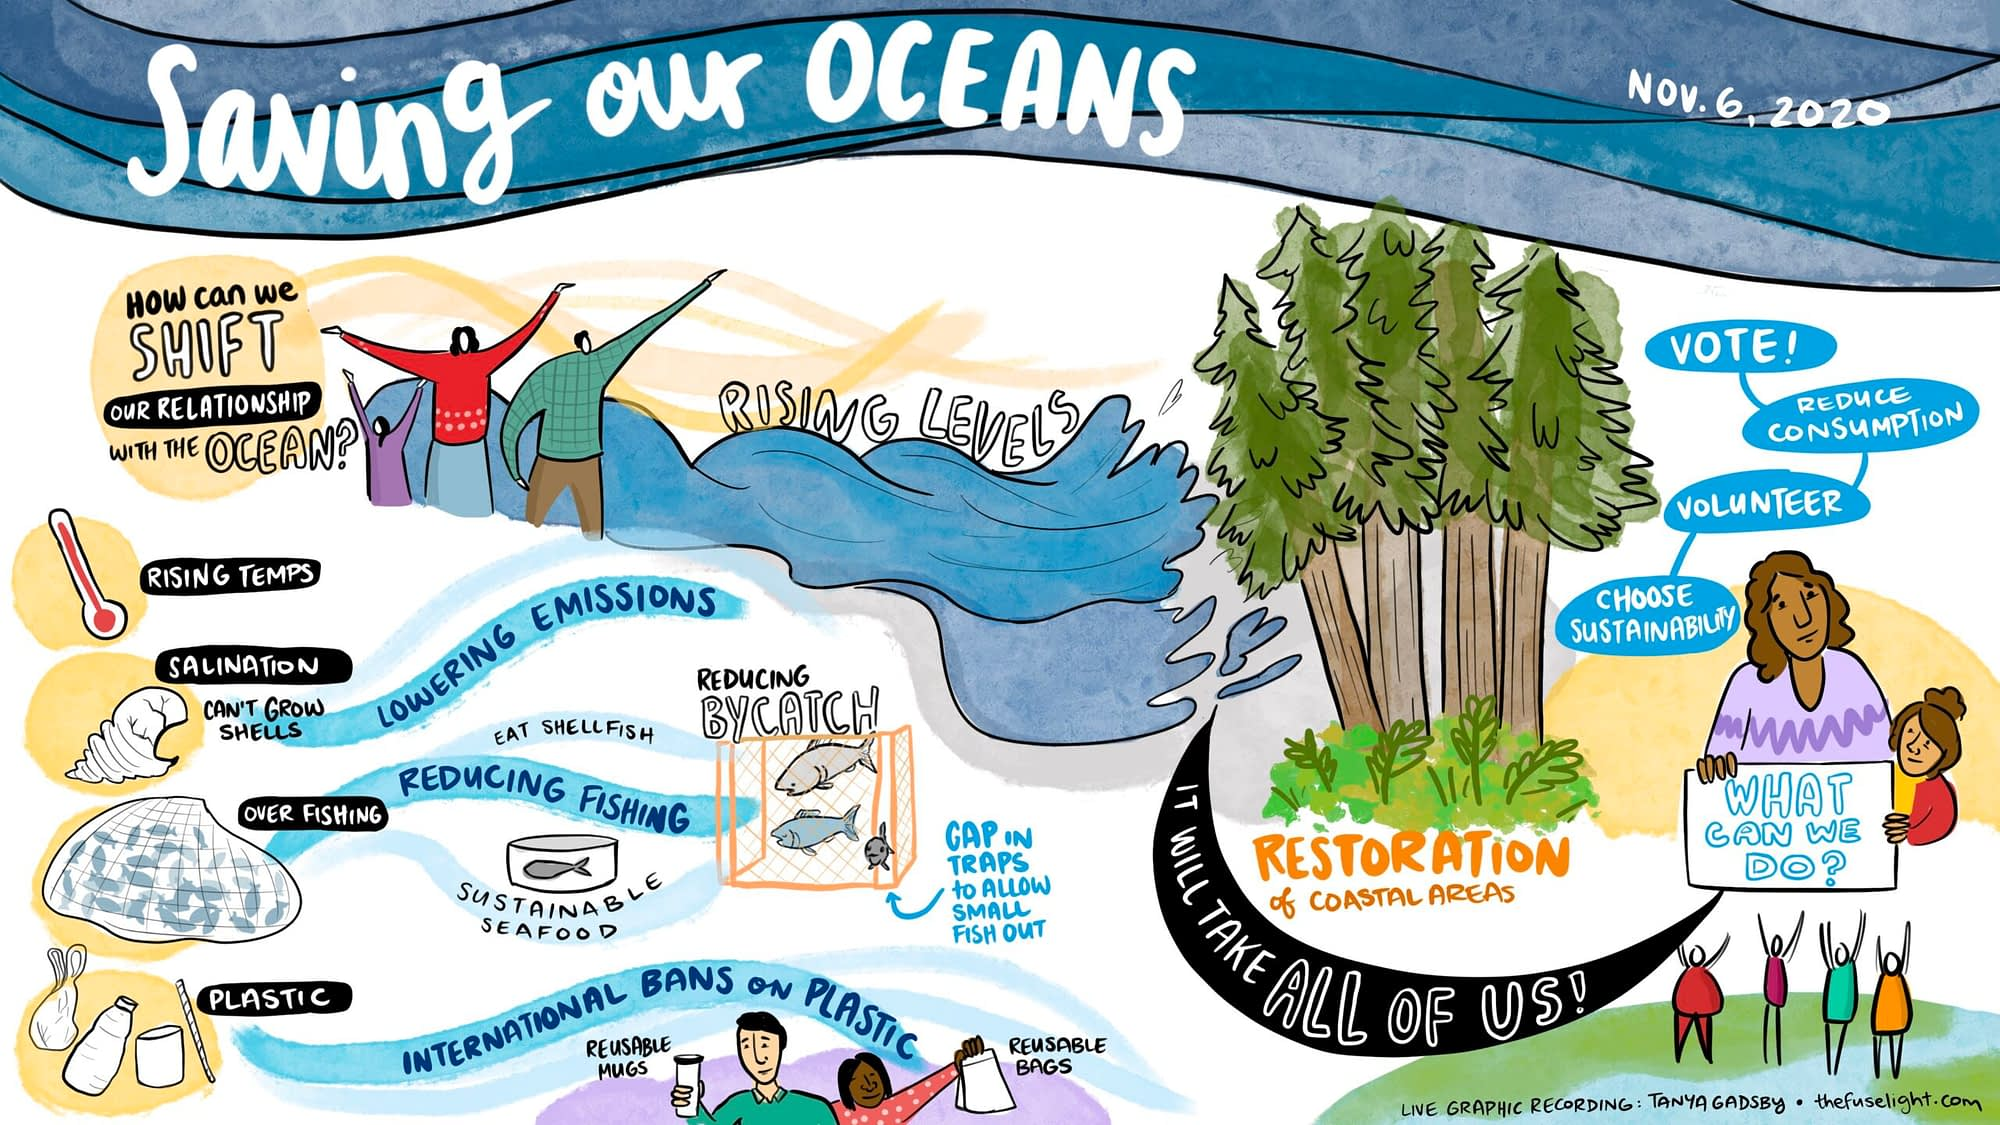 graphic recording of strategies for saving our oceans and reducing impact of plastic and carbon emissions